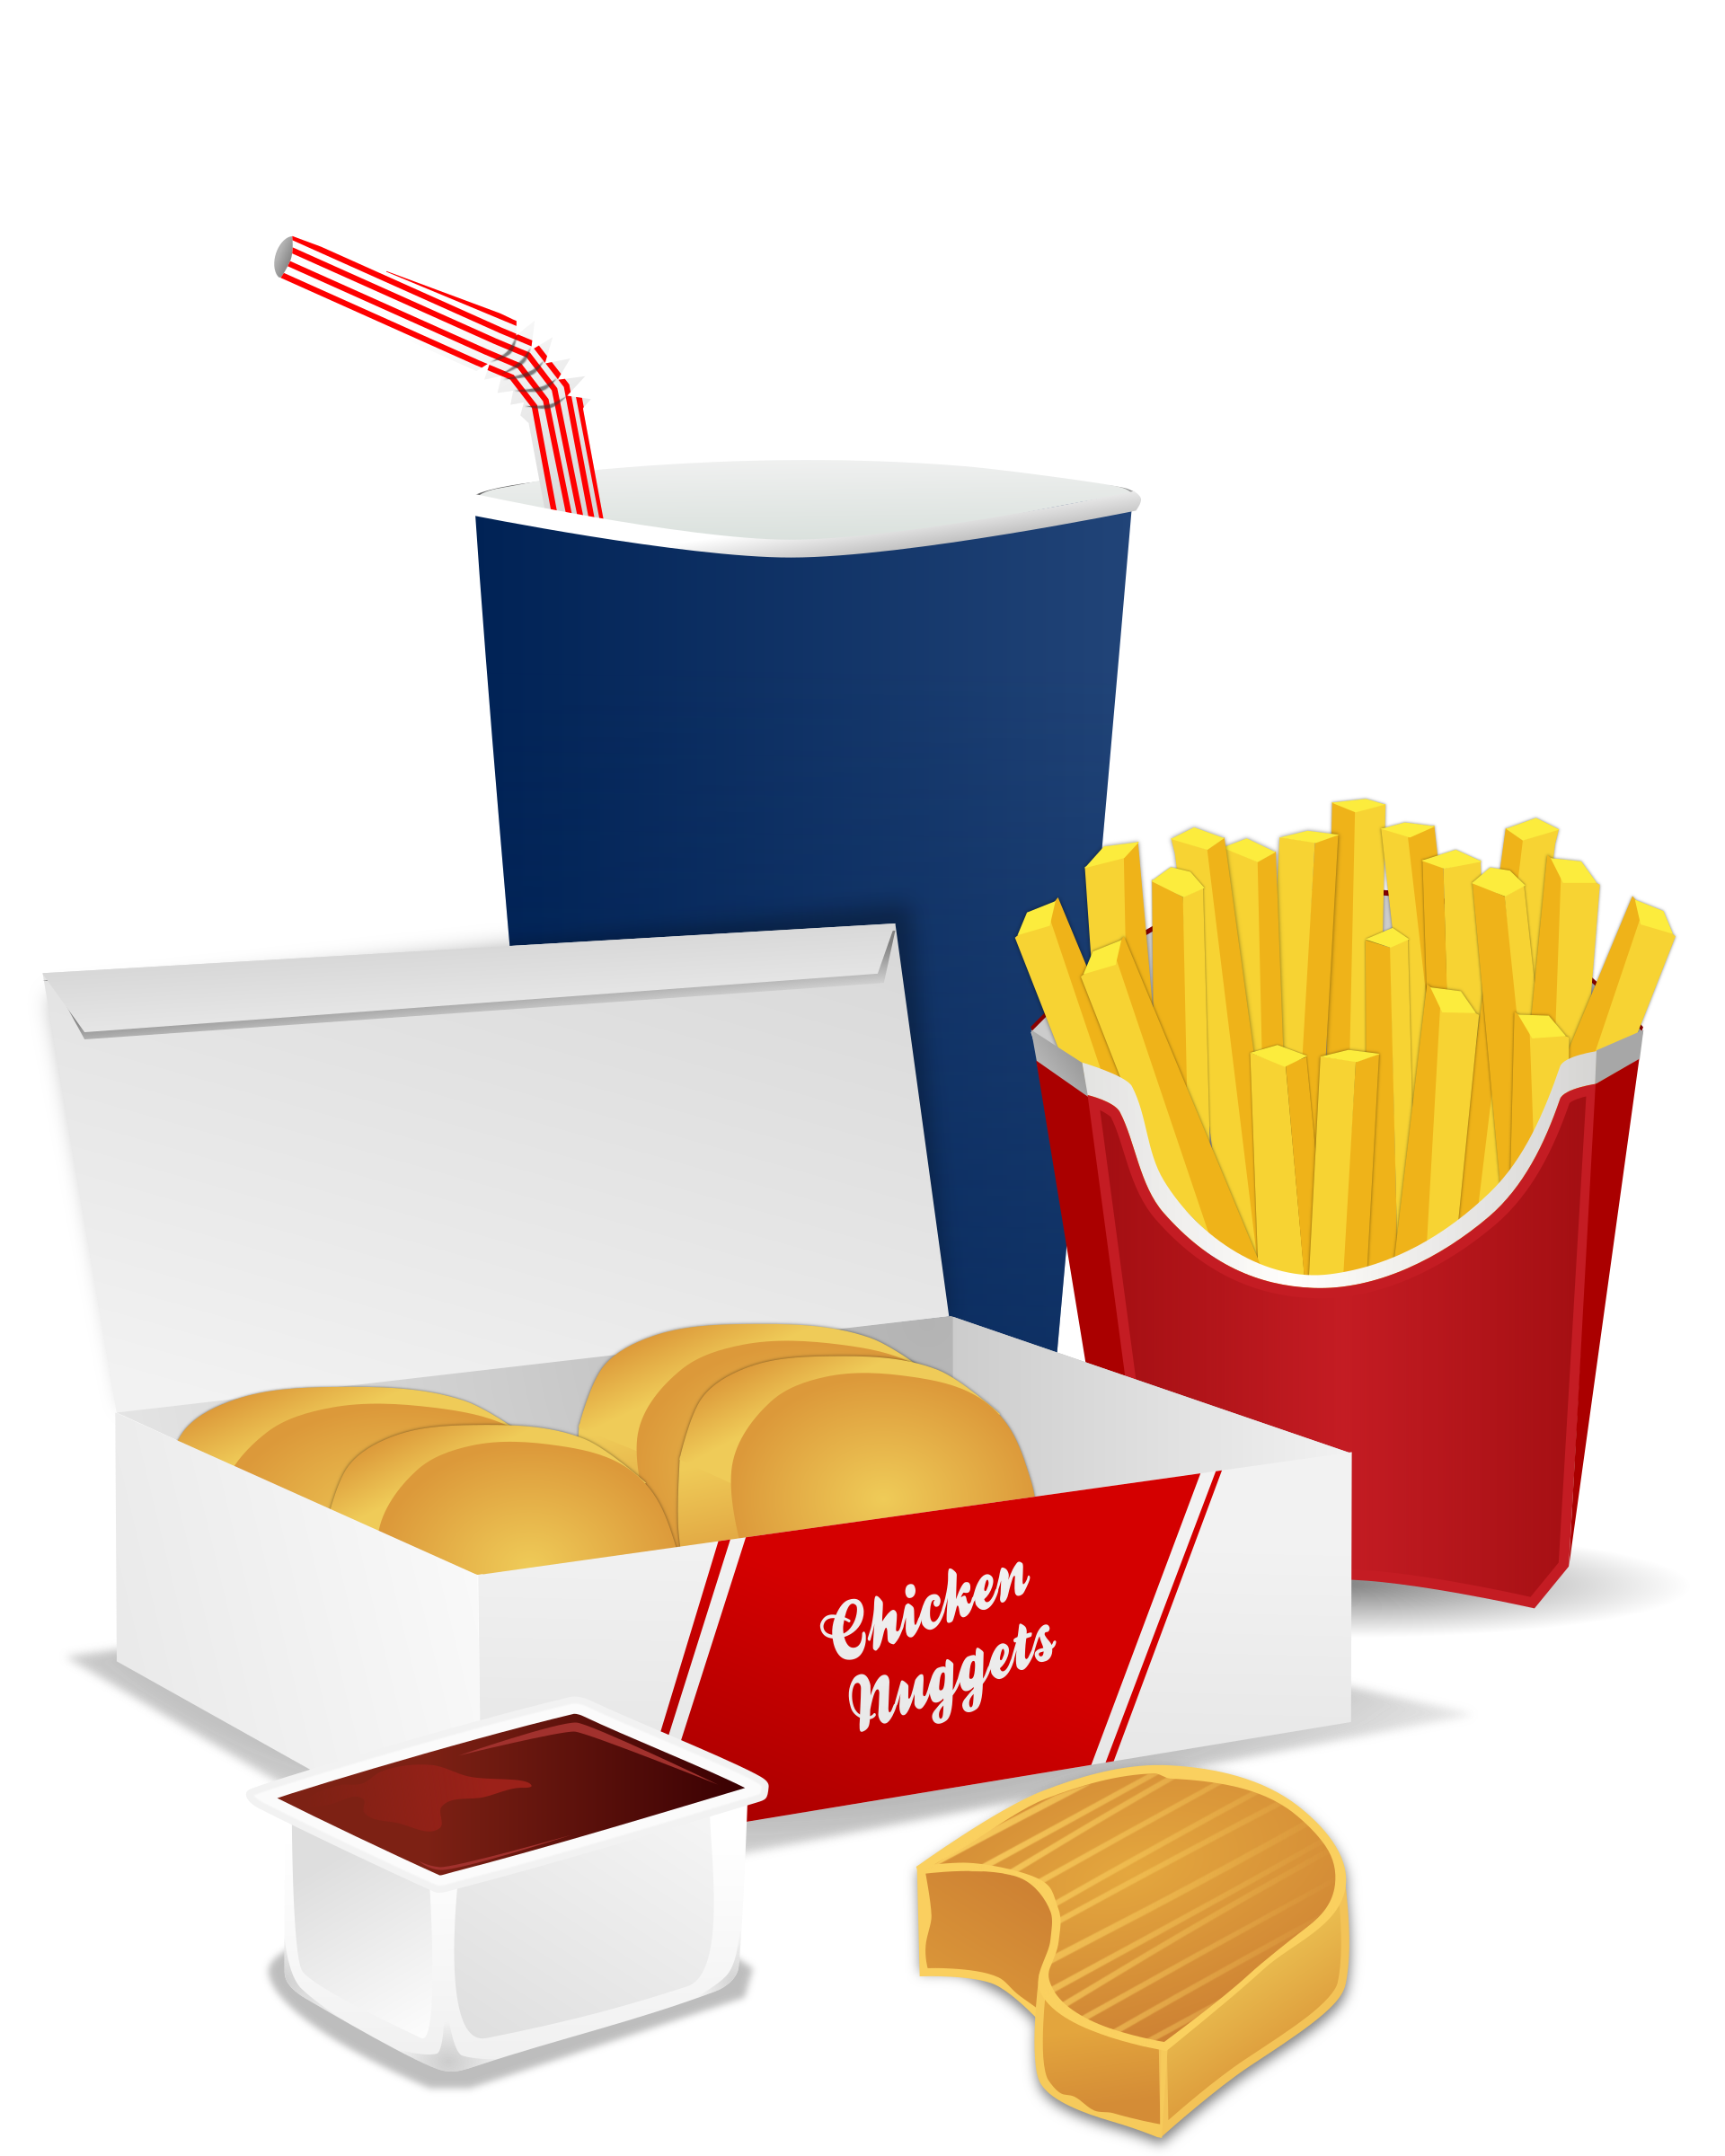 1920x2400 Fast Food Meal Vector Clipart Image